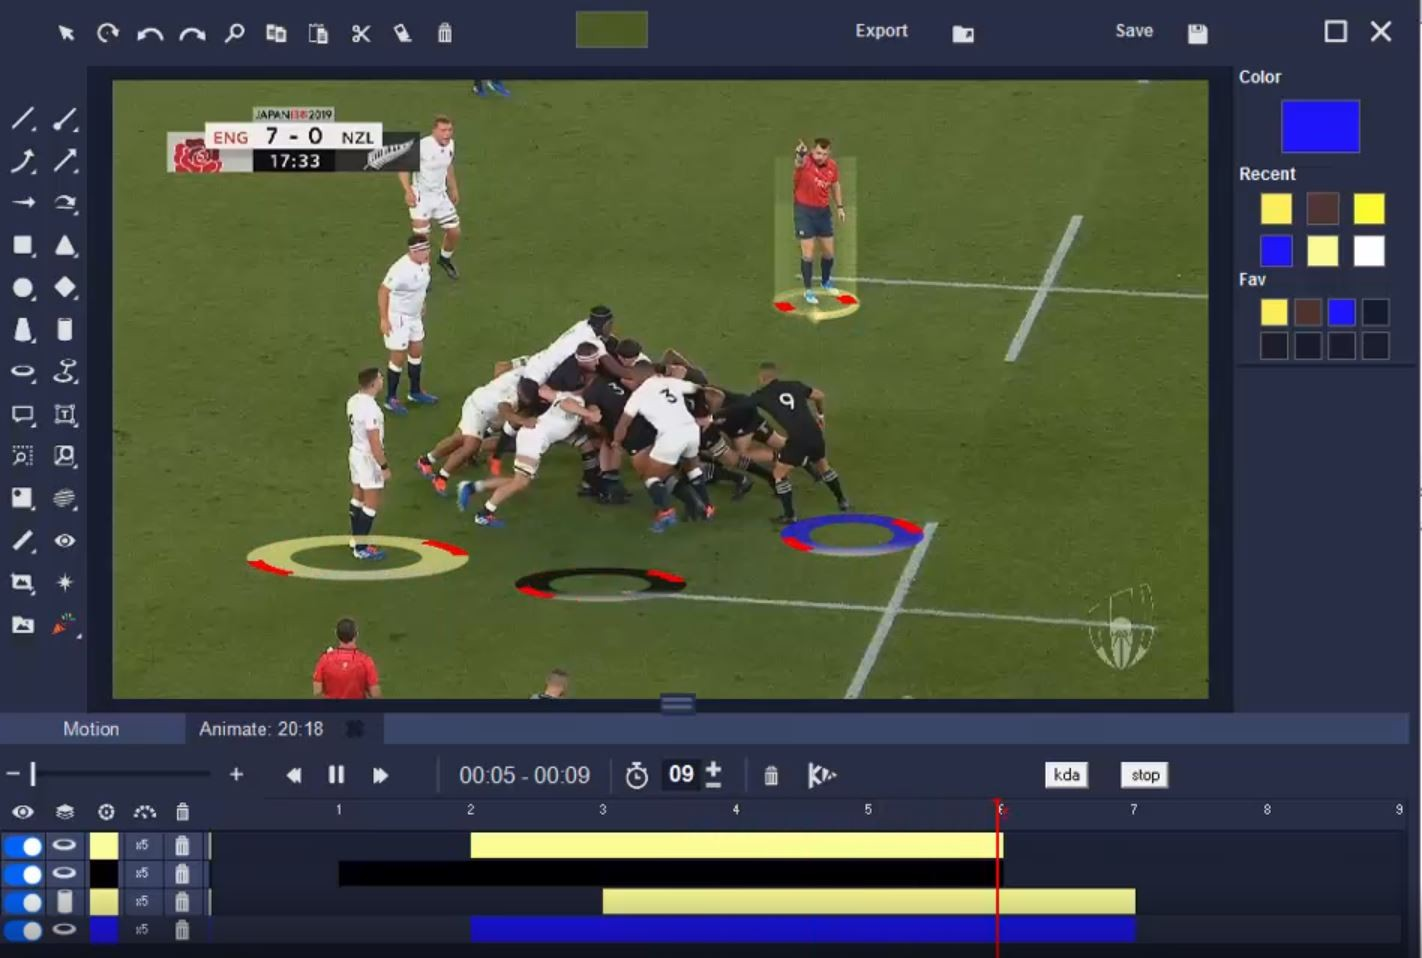 Video analysis purpose